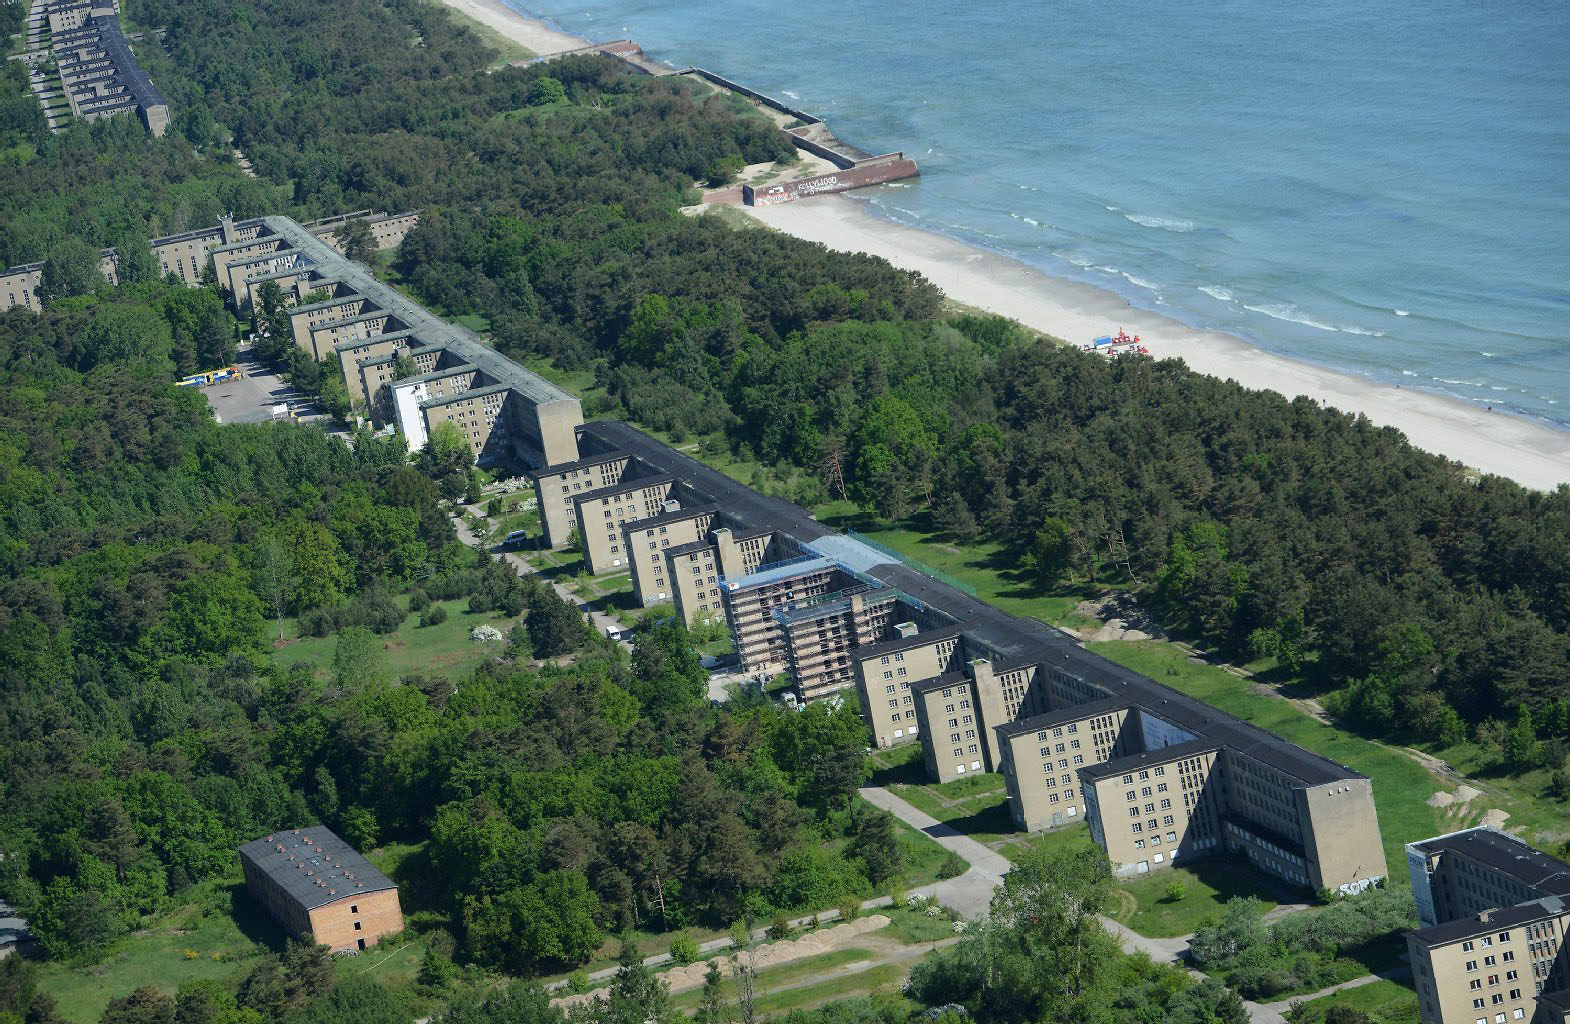 Hitler's Abandoned Failed Nazi Dream Resort